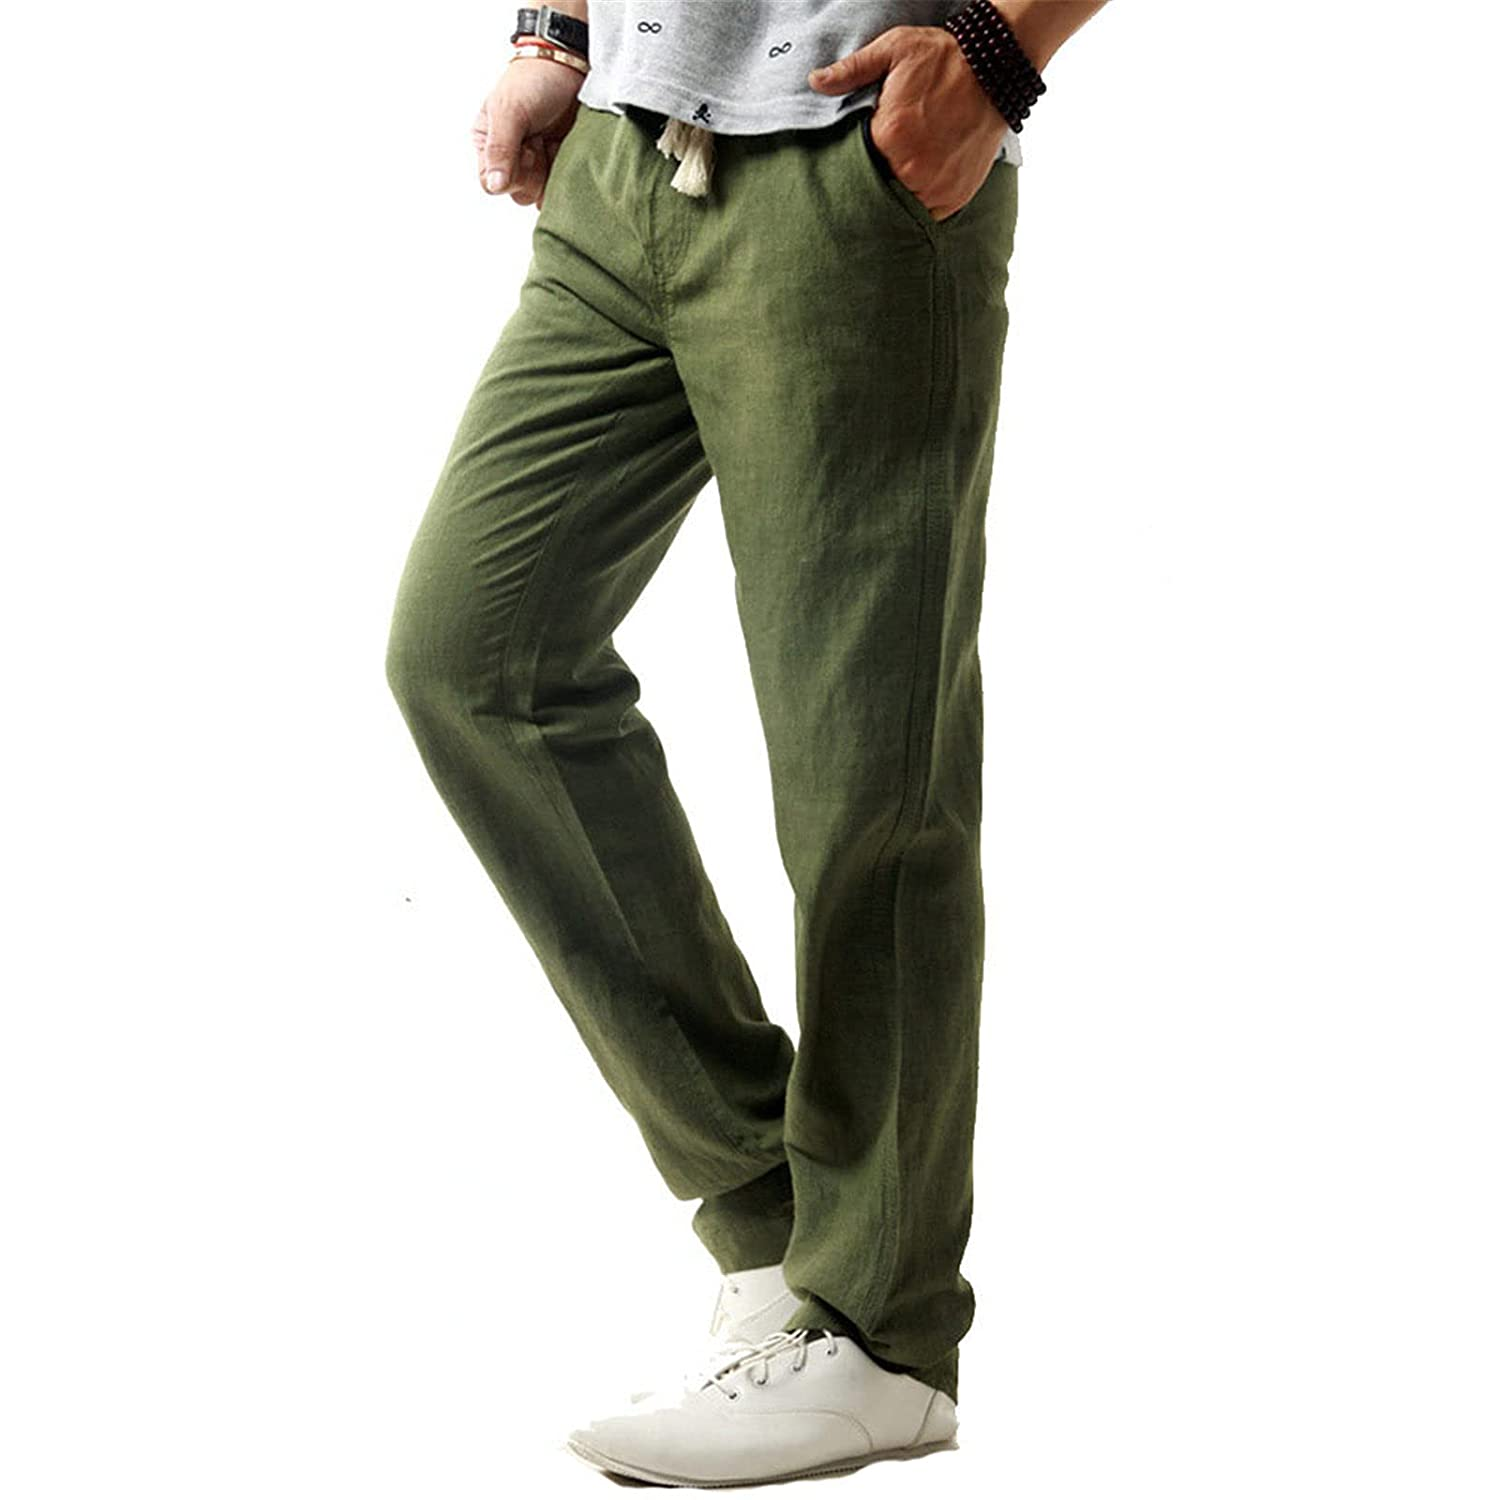 Mens Pants Simple and Fashionable Pants Summer Expandable-Waist Pure Cotton and Linen Trousers (4X-Large,Green)